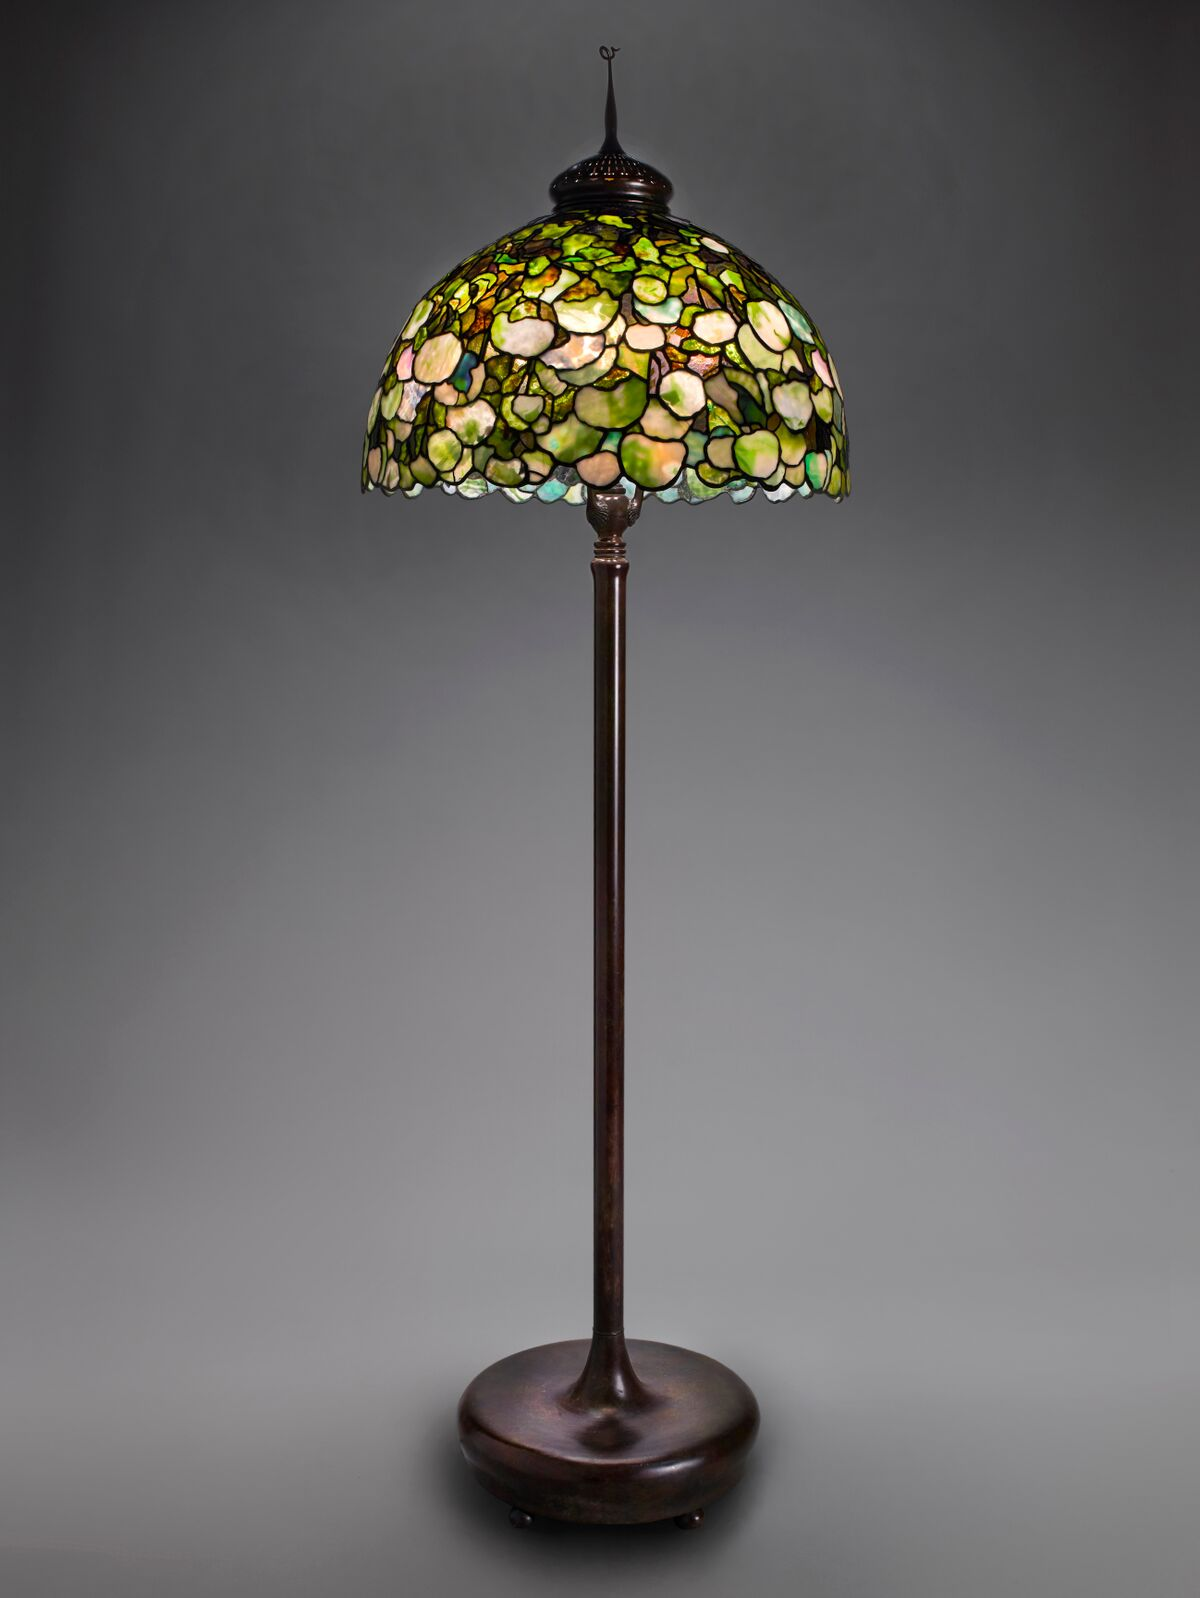 Tiffany Studios, Snowball Hydrangea Floor Lamp , about 1903–10, leaded glass, bronze. Photograph by John Faier. © Driehaus Museum 2013